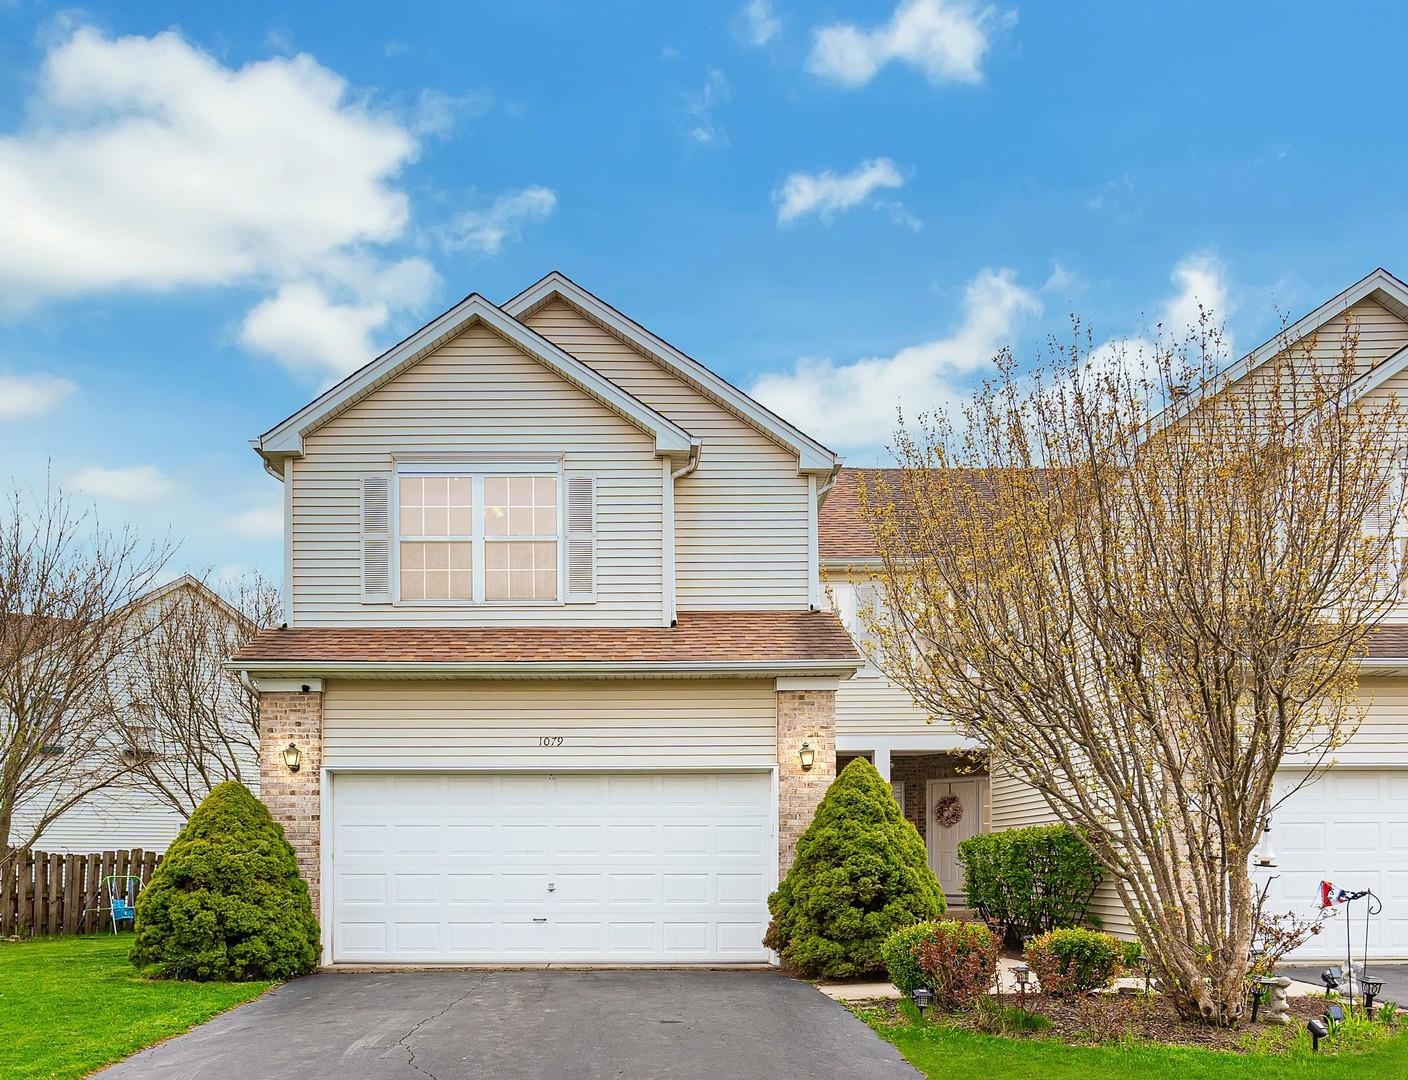 1079 Viewpoint Drive, Lake in the Hills, IL 60156 - #: 11062685